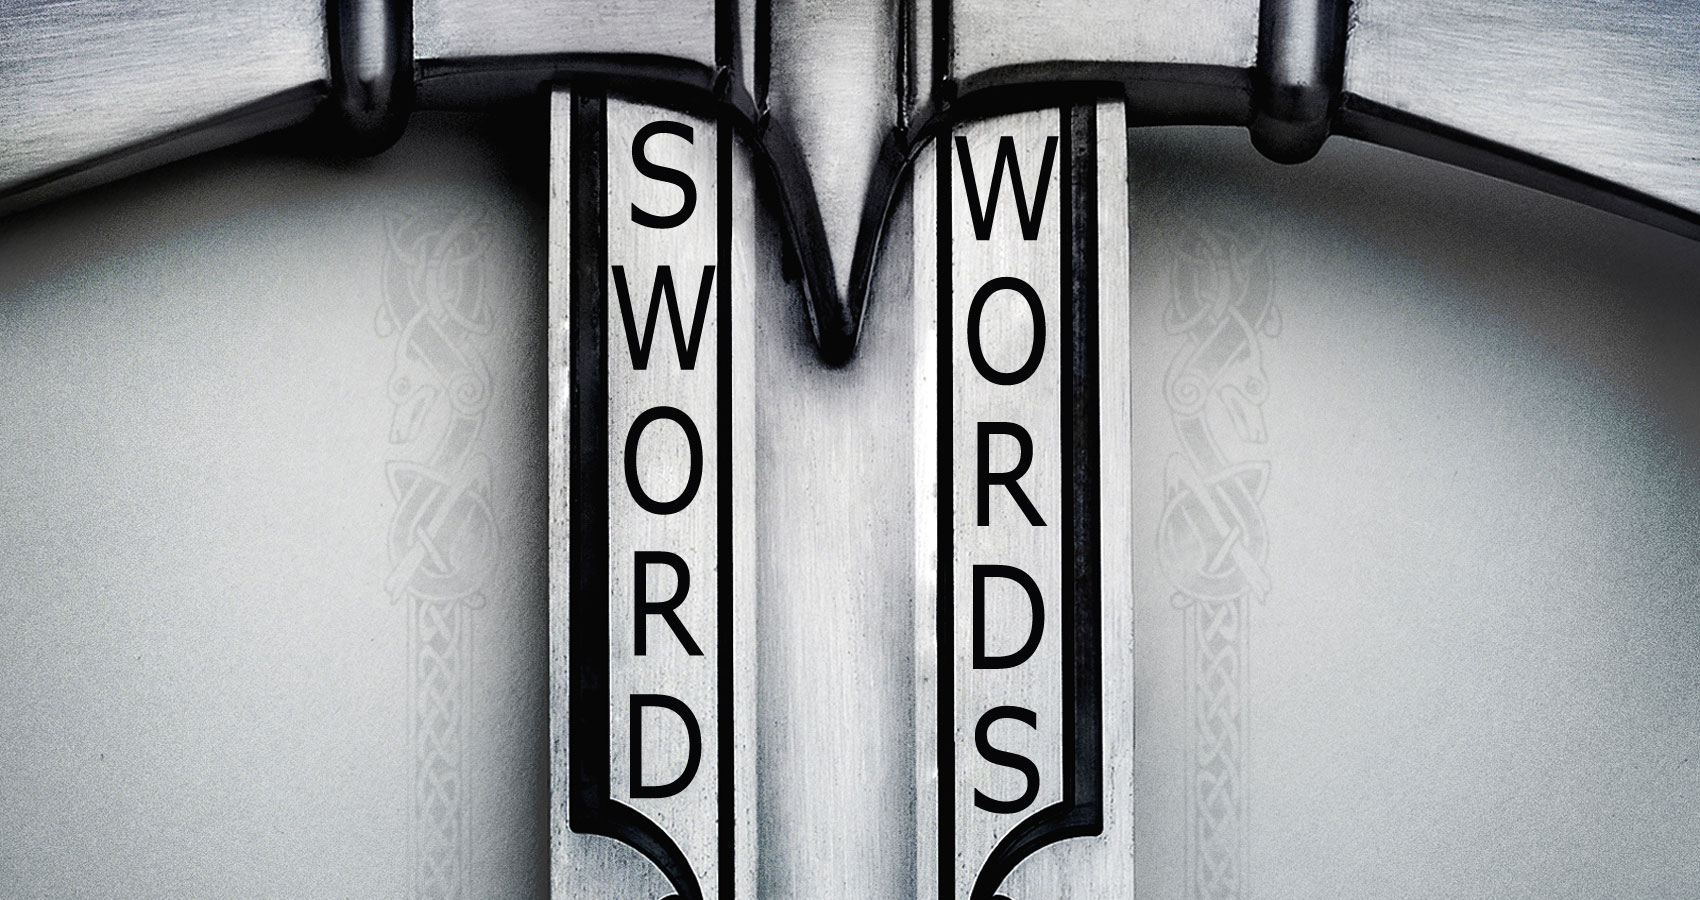 Sword Words written by Regis Auffray at Spillwords.com